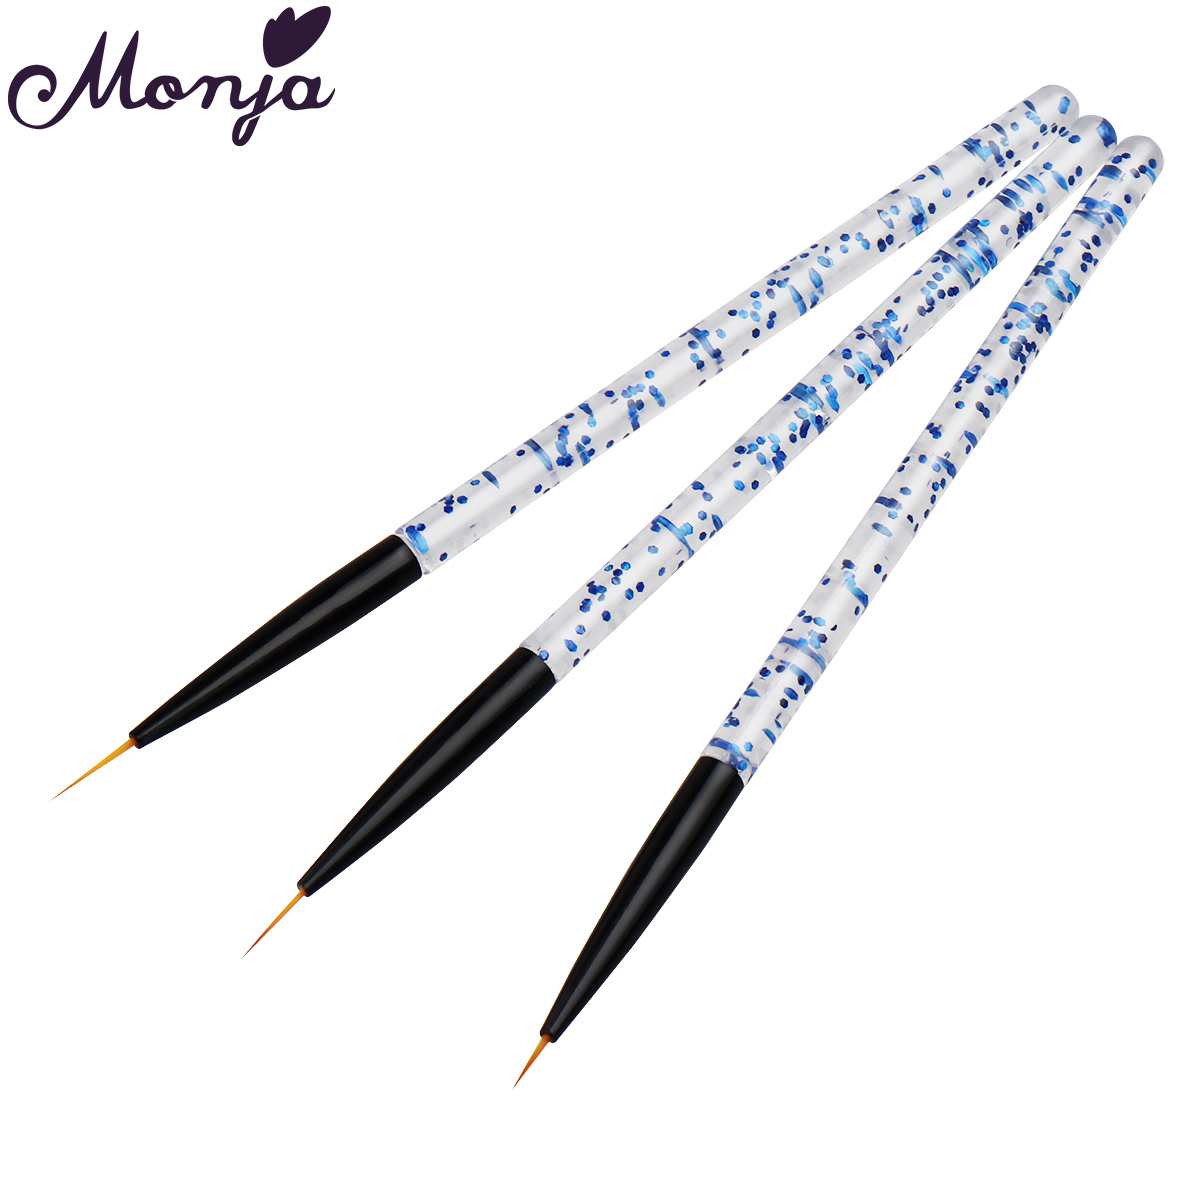 Monja 3Pcs/Set Nail Art Acrylic Handle Lines Stripes Liner Painting Brush Flower Pattern DIY Design Drawing Brush Manicure Tools(China)